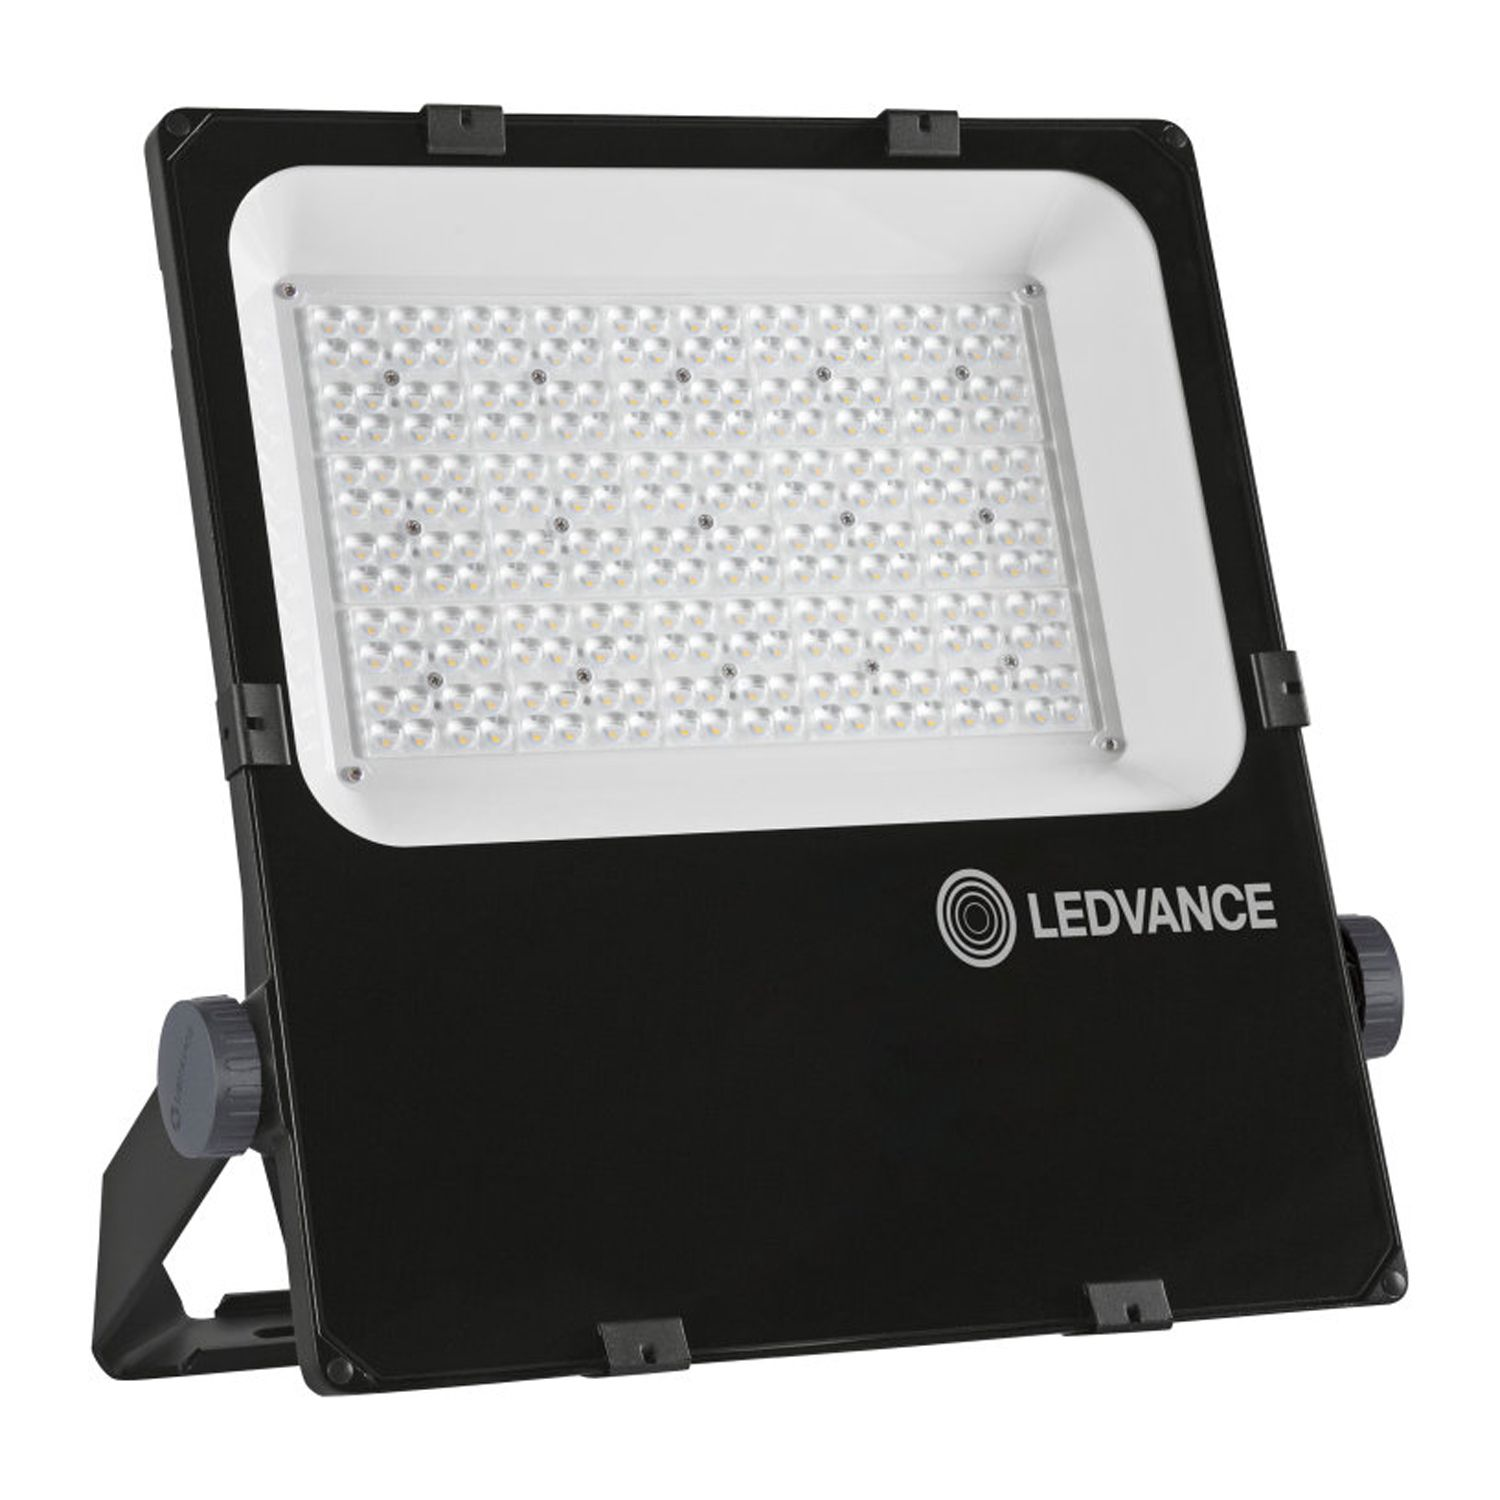 Ledvance LED Floodlight Performance 200W 4000K 28000lm IP66 | Cool white